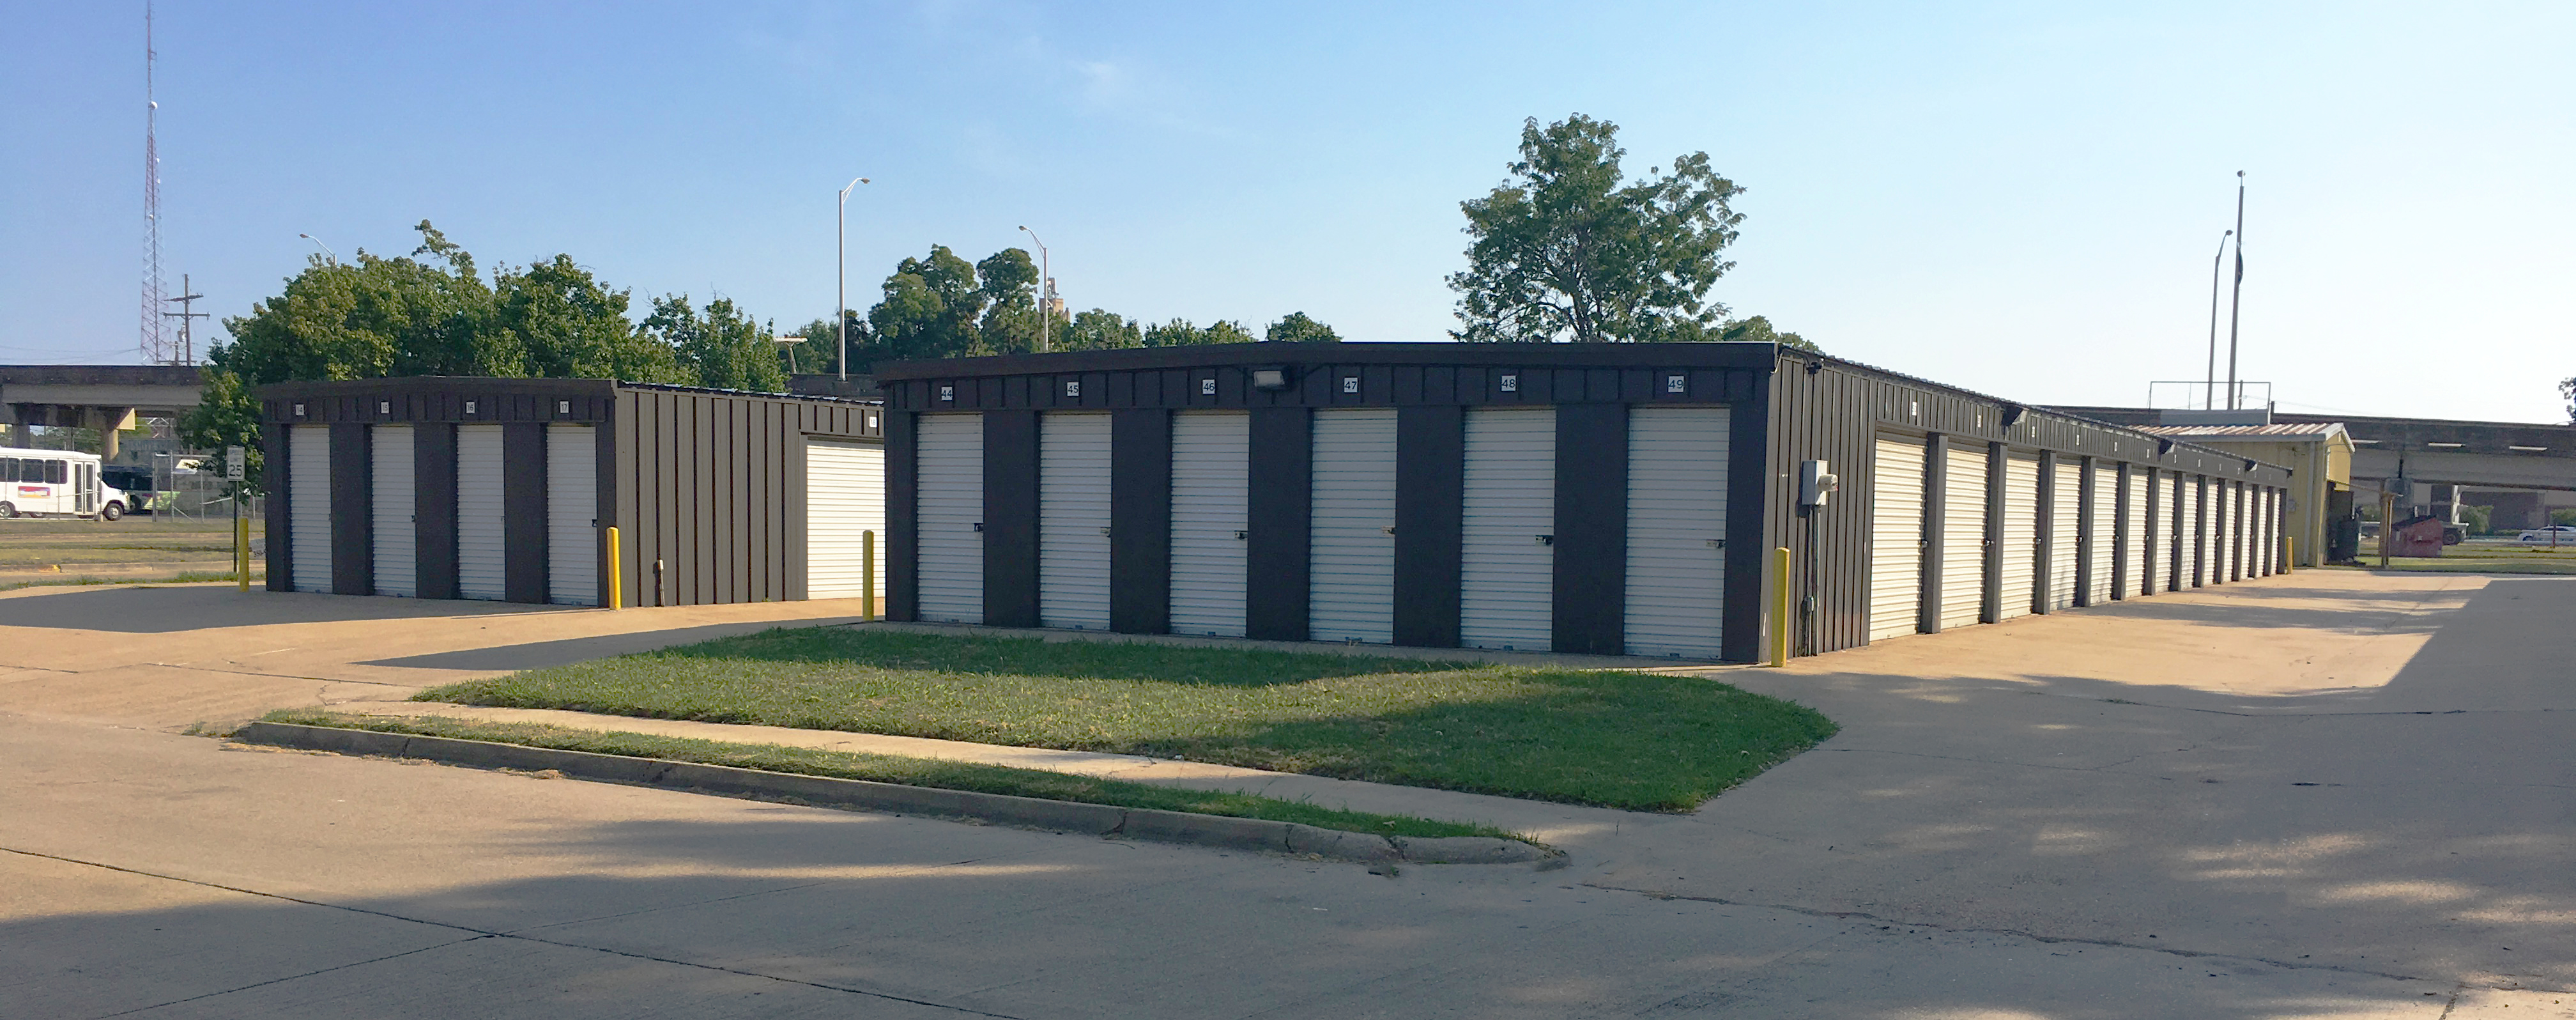 Self Storage Units West Monroe La Dandk Organizer